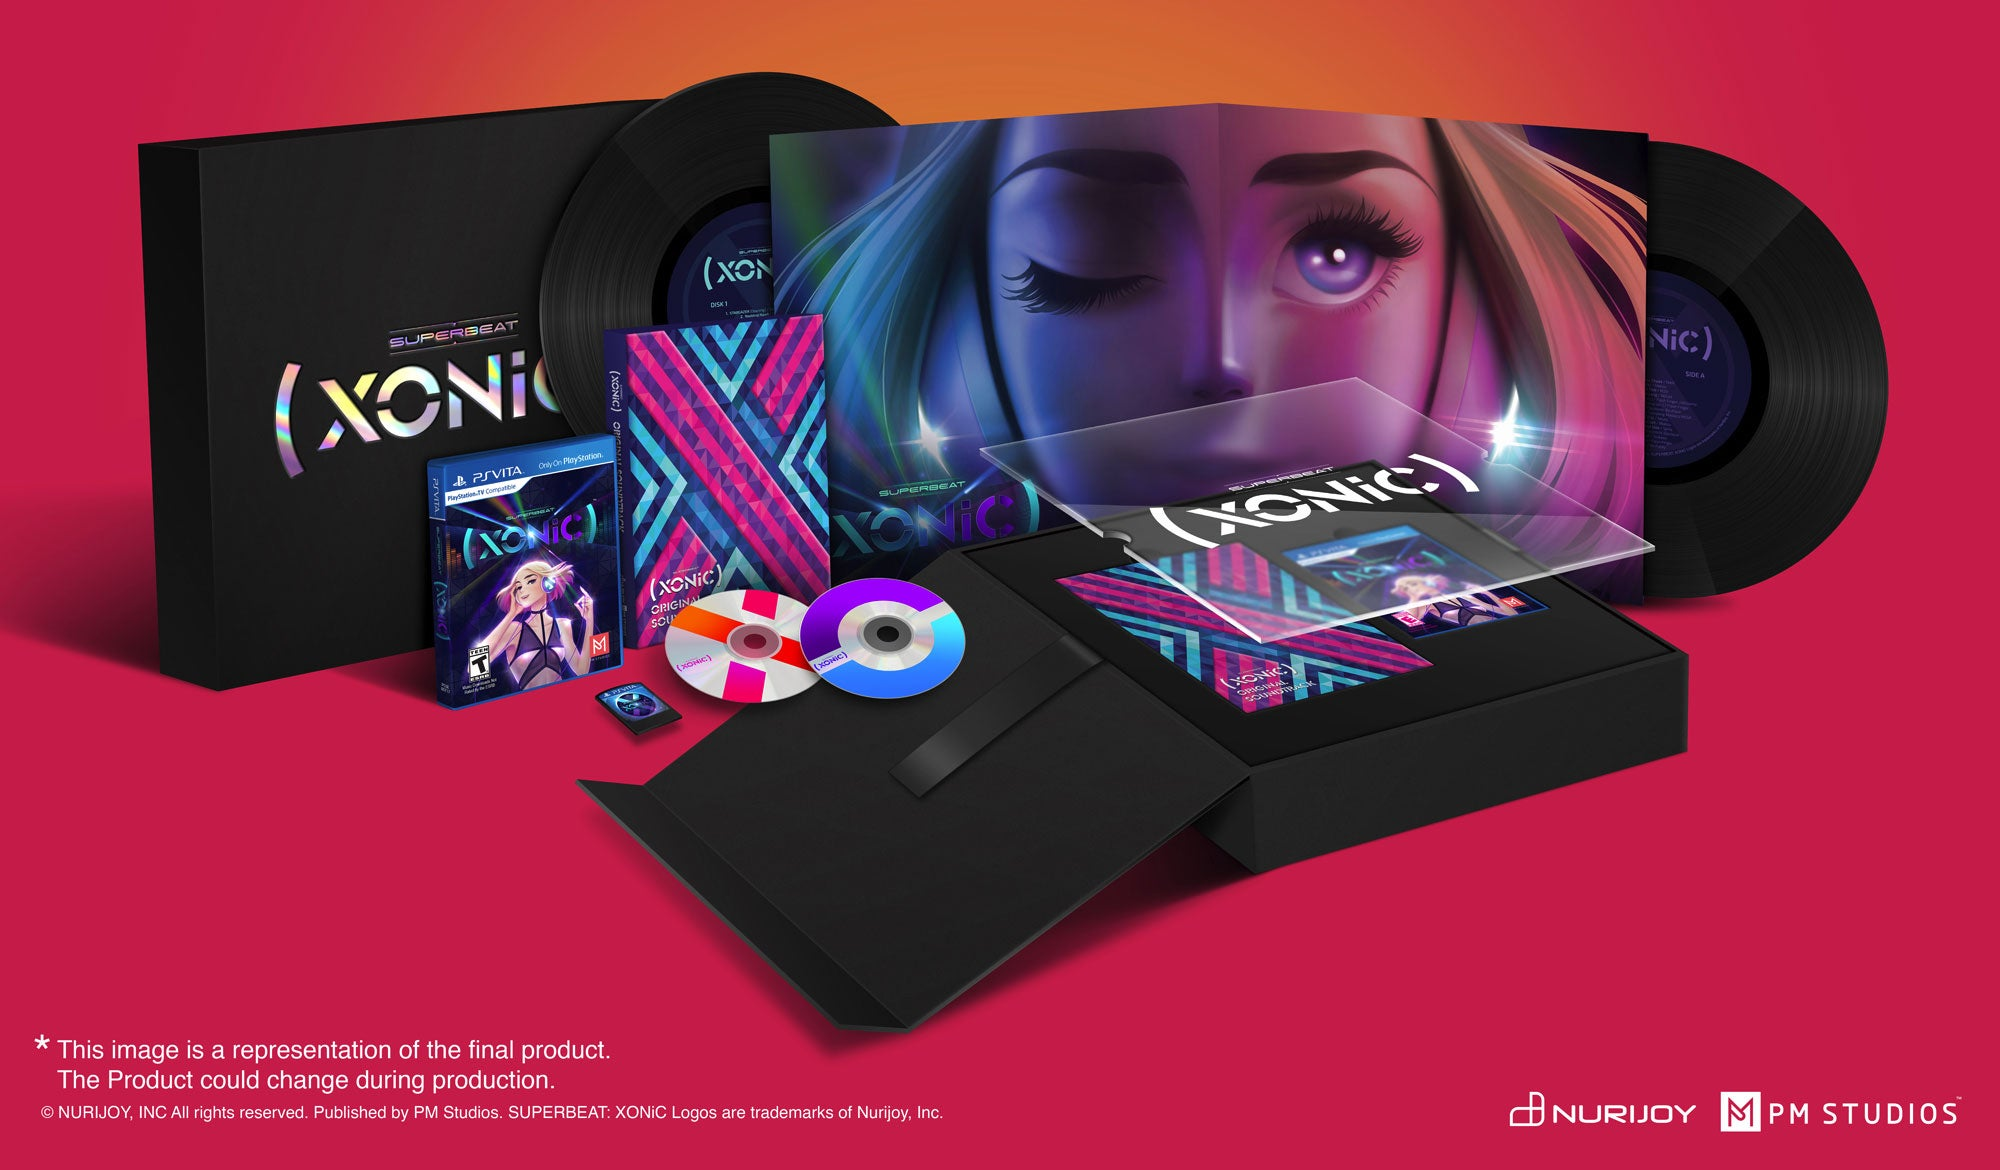 The Spiritual Successor to DJMax Doesn't Screw Around